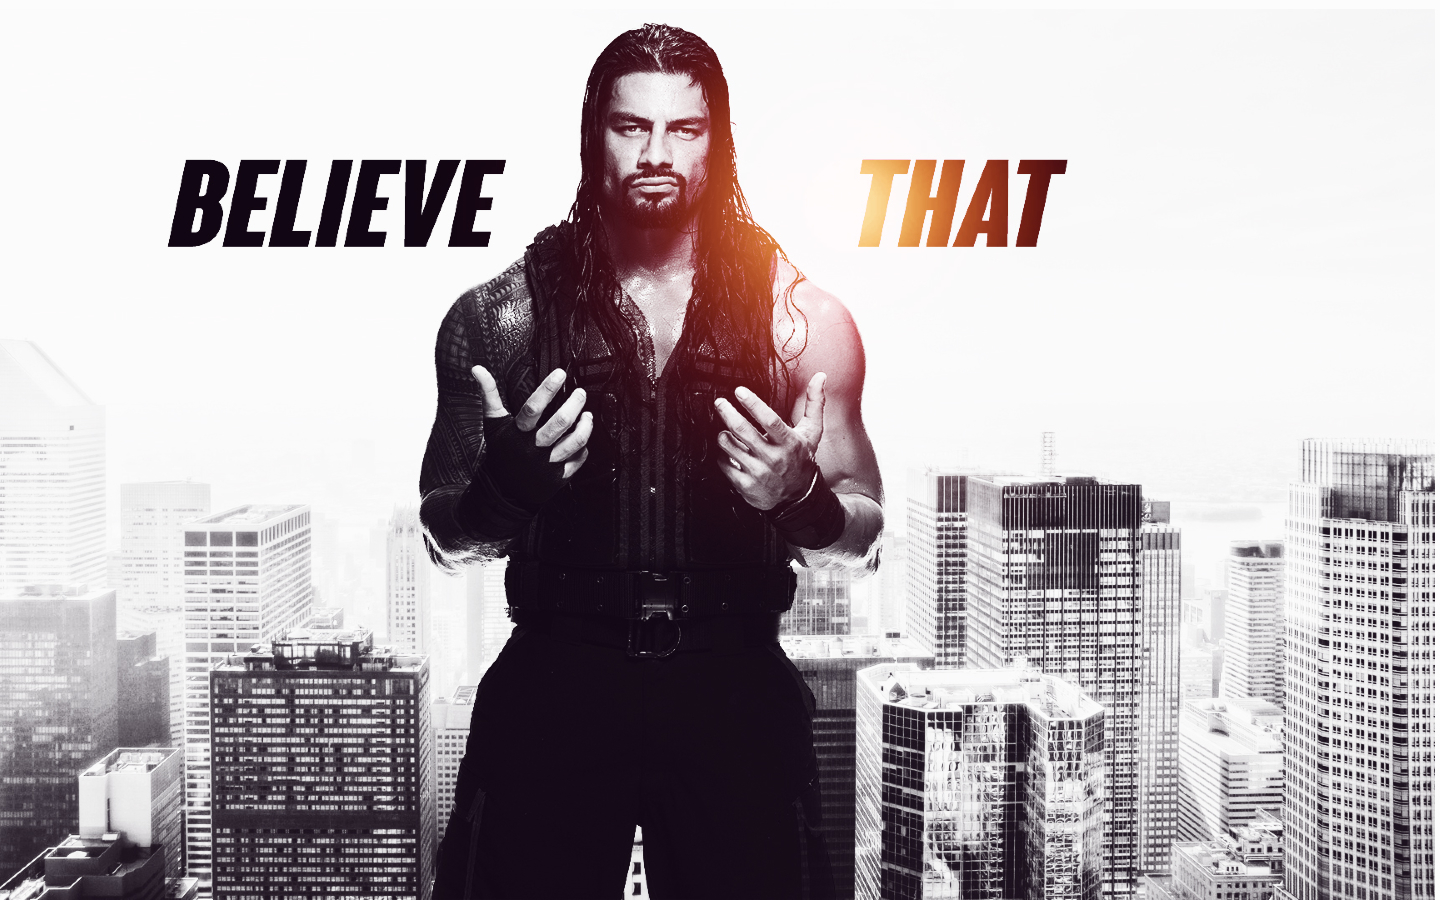 roman reigns hd wallpaper galaxy download